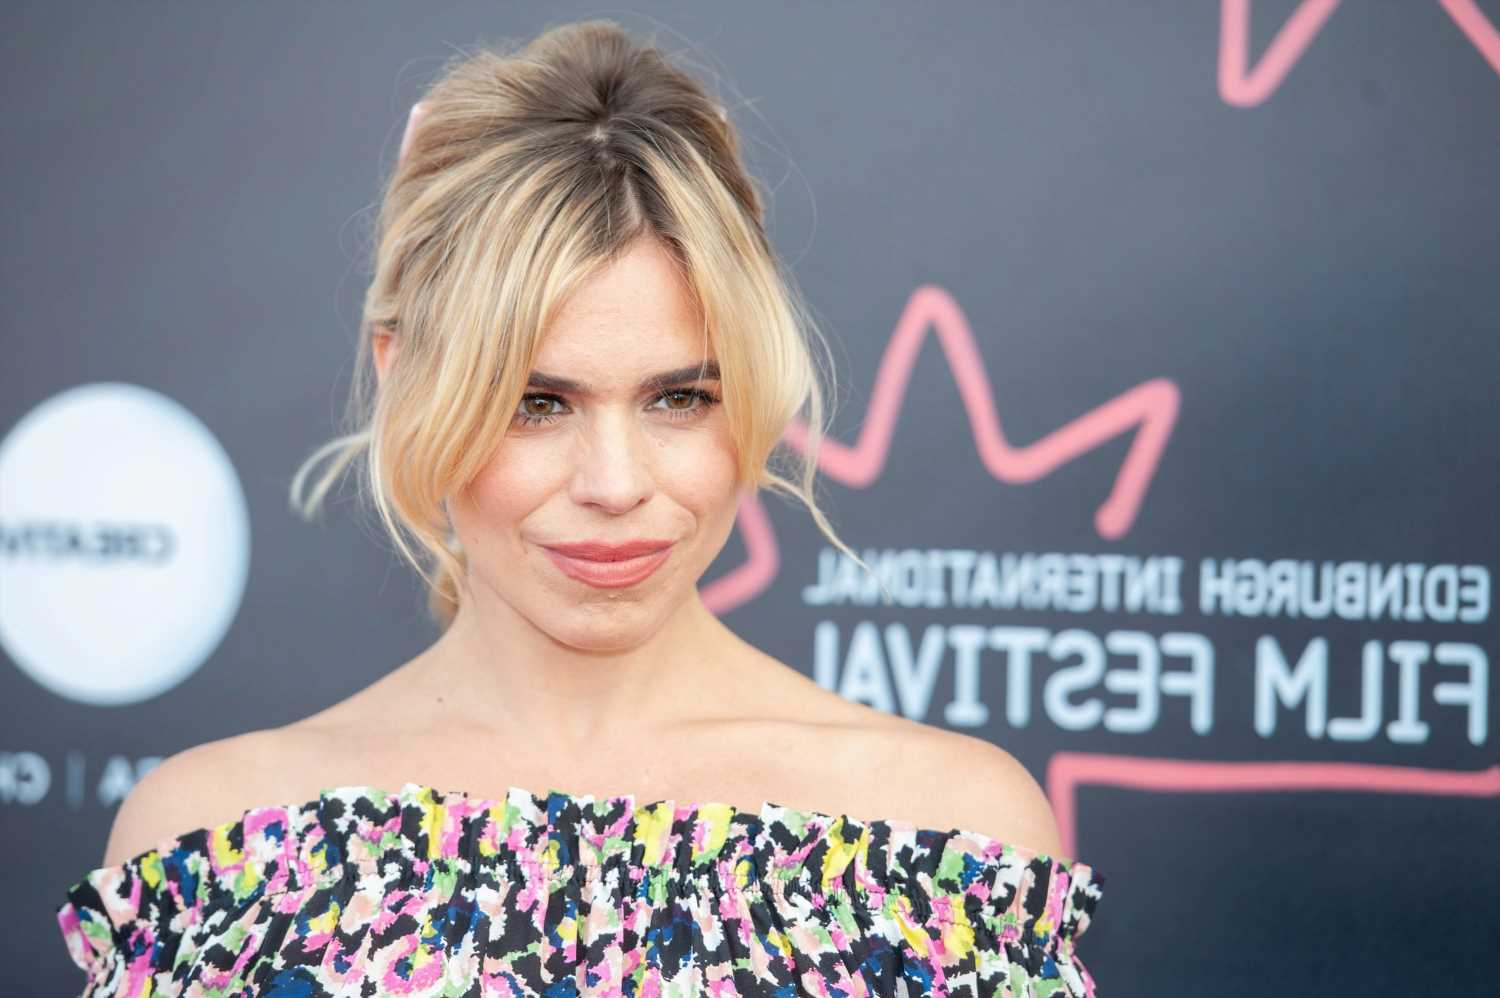 Ex-Doctor Who star Billie Piper says she cries at night over stress of being a mum with a successful career